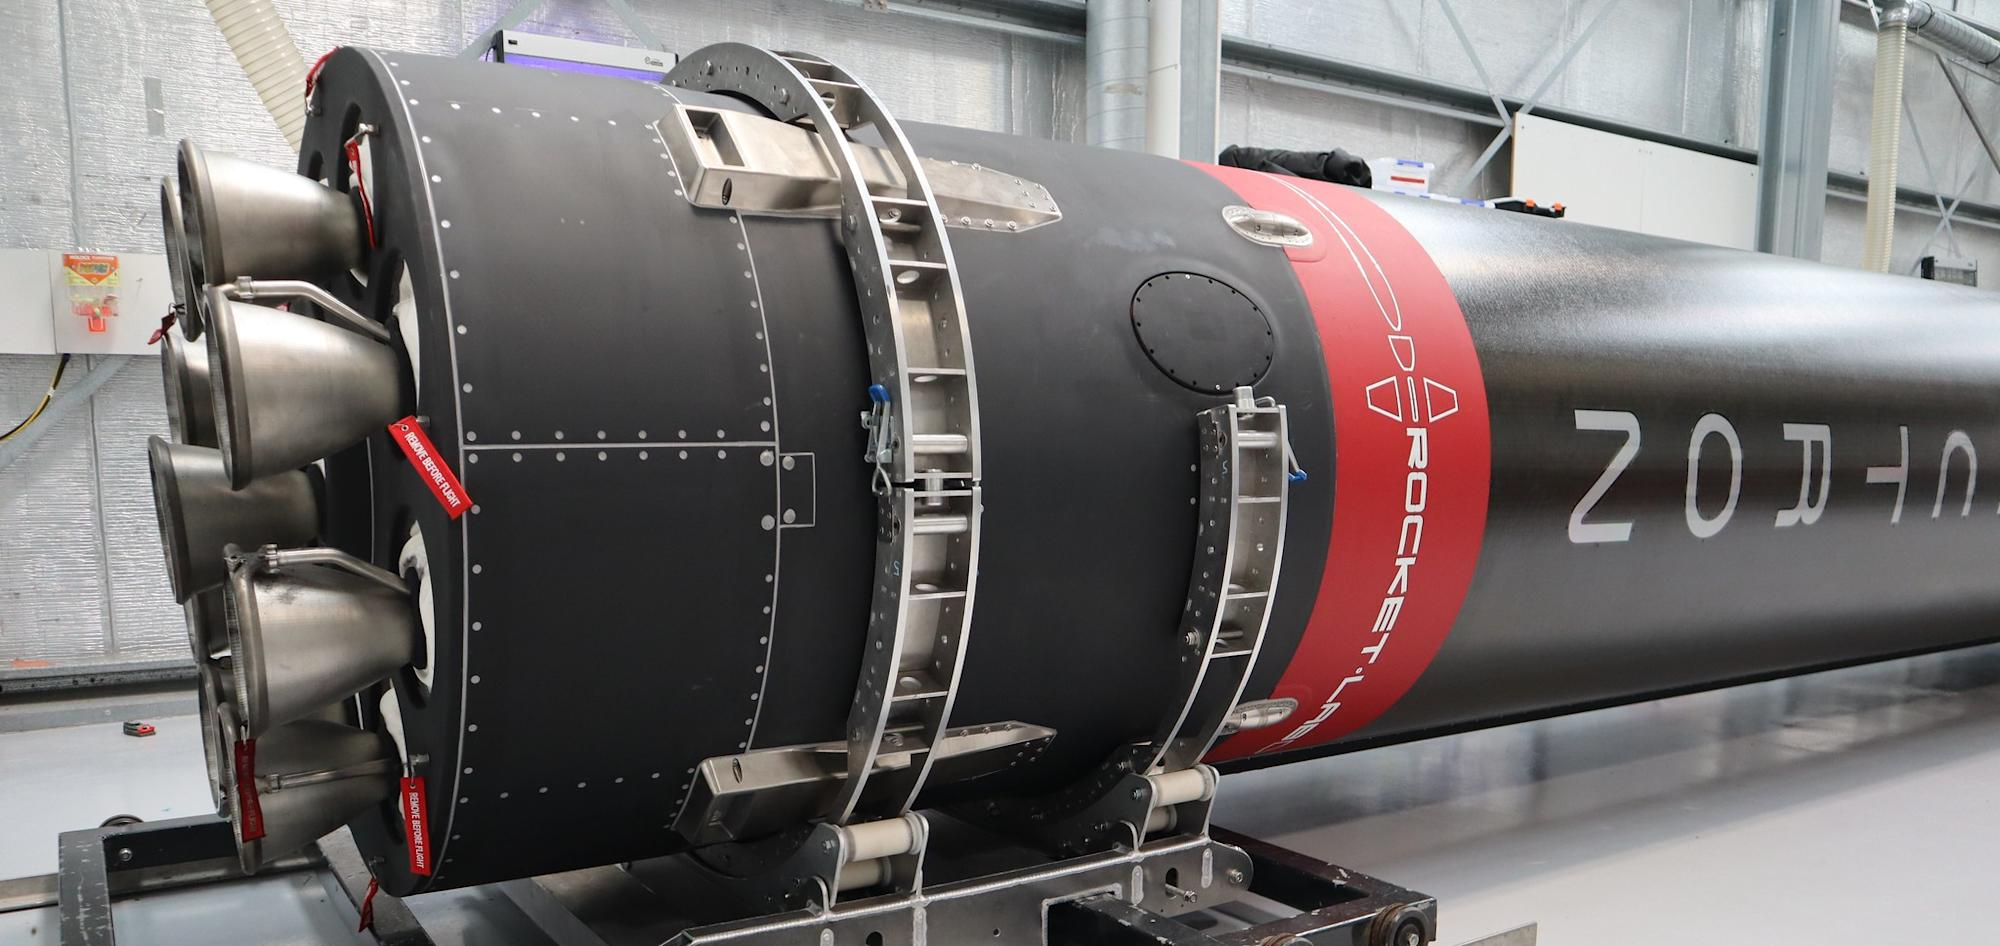 Rocket Lab tested its parachute system on a live booster for the first time – Yahoo Finance Australia